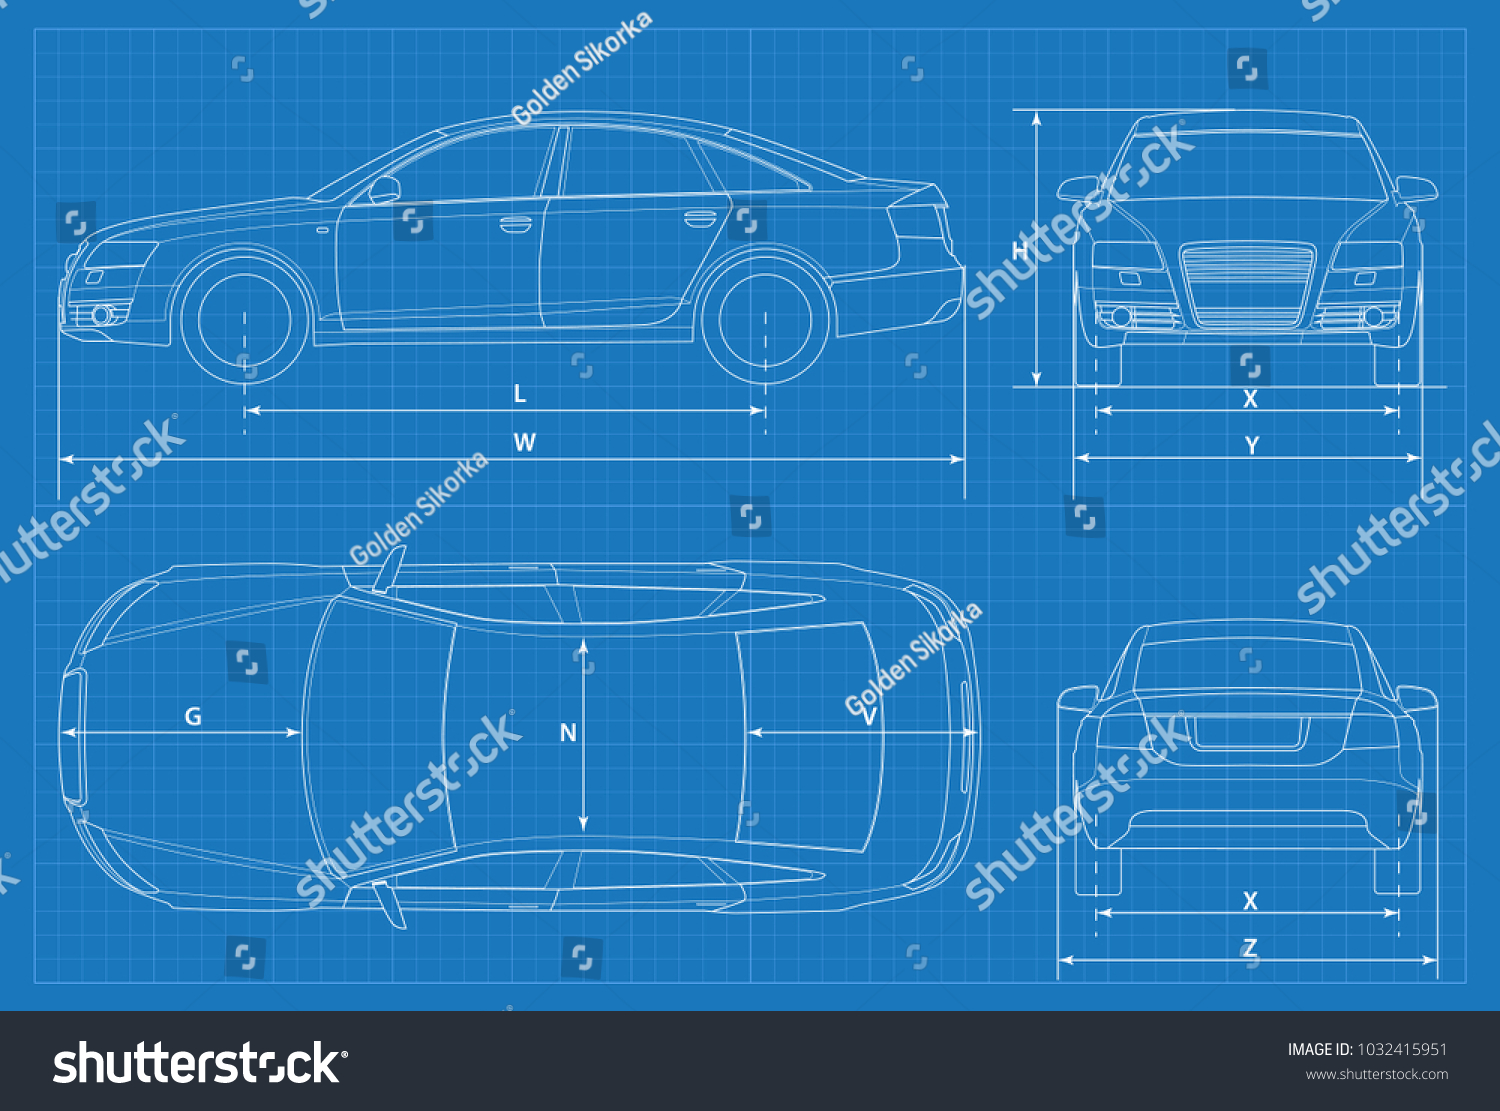 Car schematic or car blueprint. Vector illustration. Sedan car in outline.  Business sedan